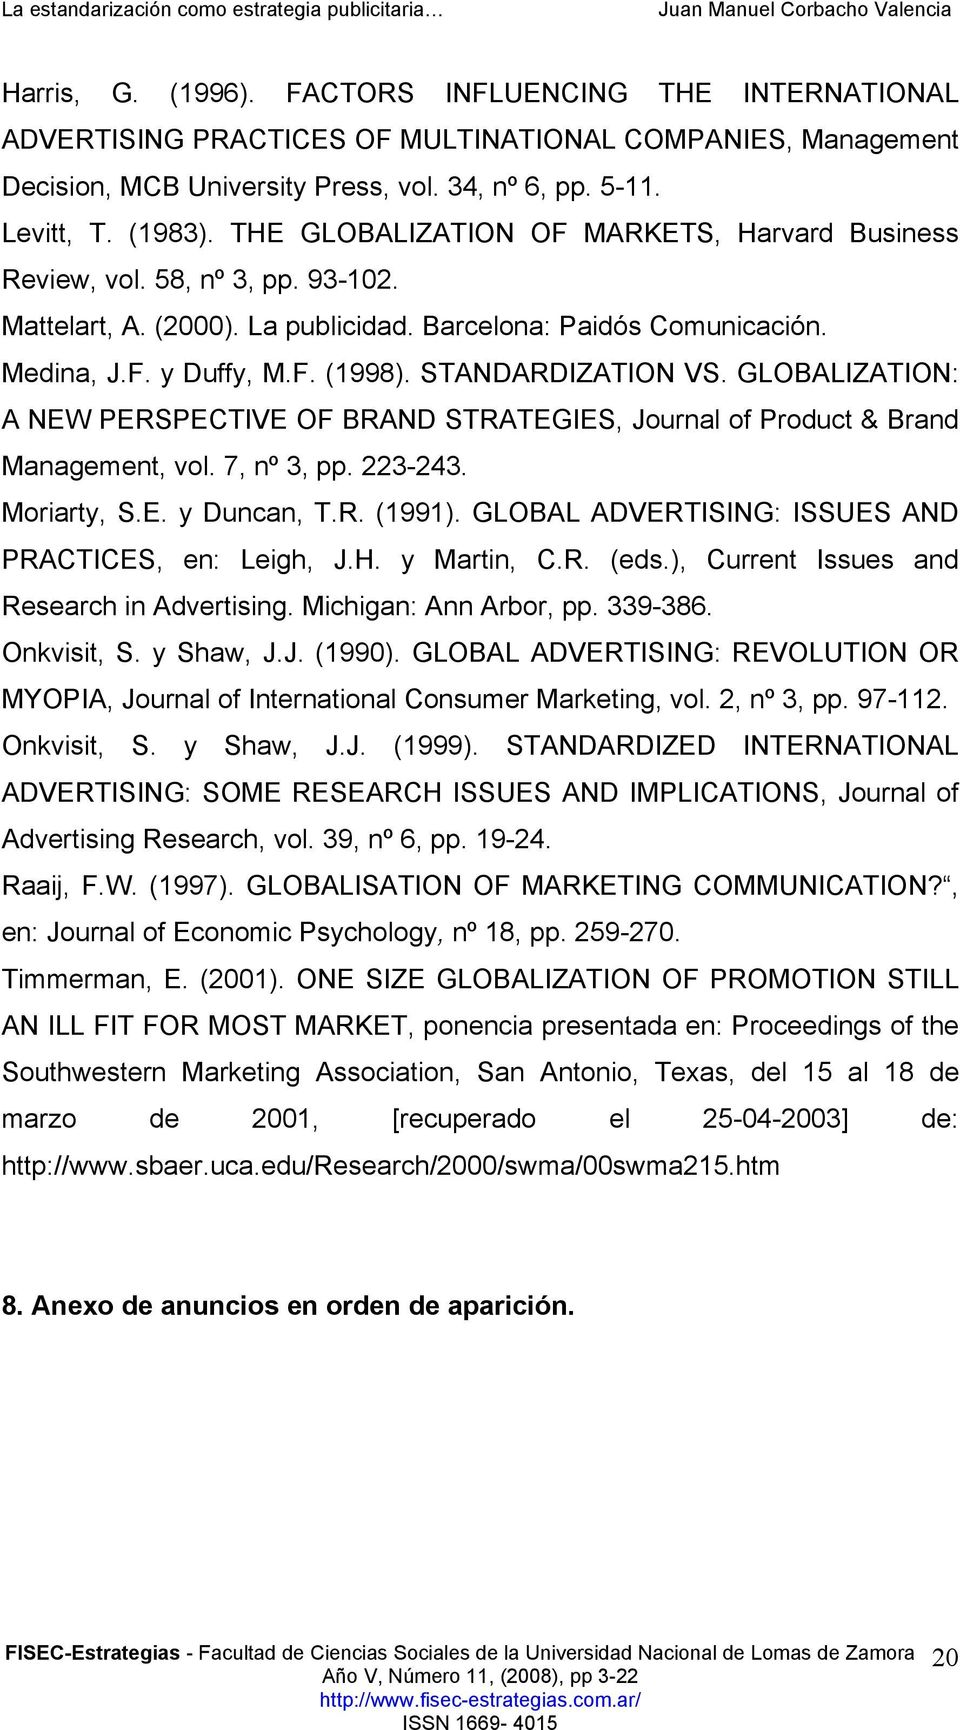 STANDARDIZATION VS. GLOBALIZATION: A NEW PERSPECTIVE OF BRAND STRATEGIES, Journal of Product & Brand Management, vol. 7, nº 3, pp. 223-243. Moriarty, S.E. y Duncan, T.R. (1991).